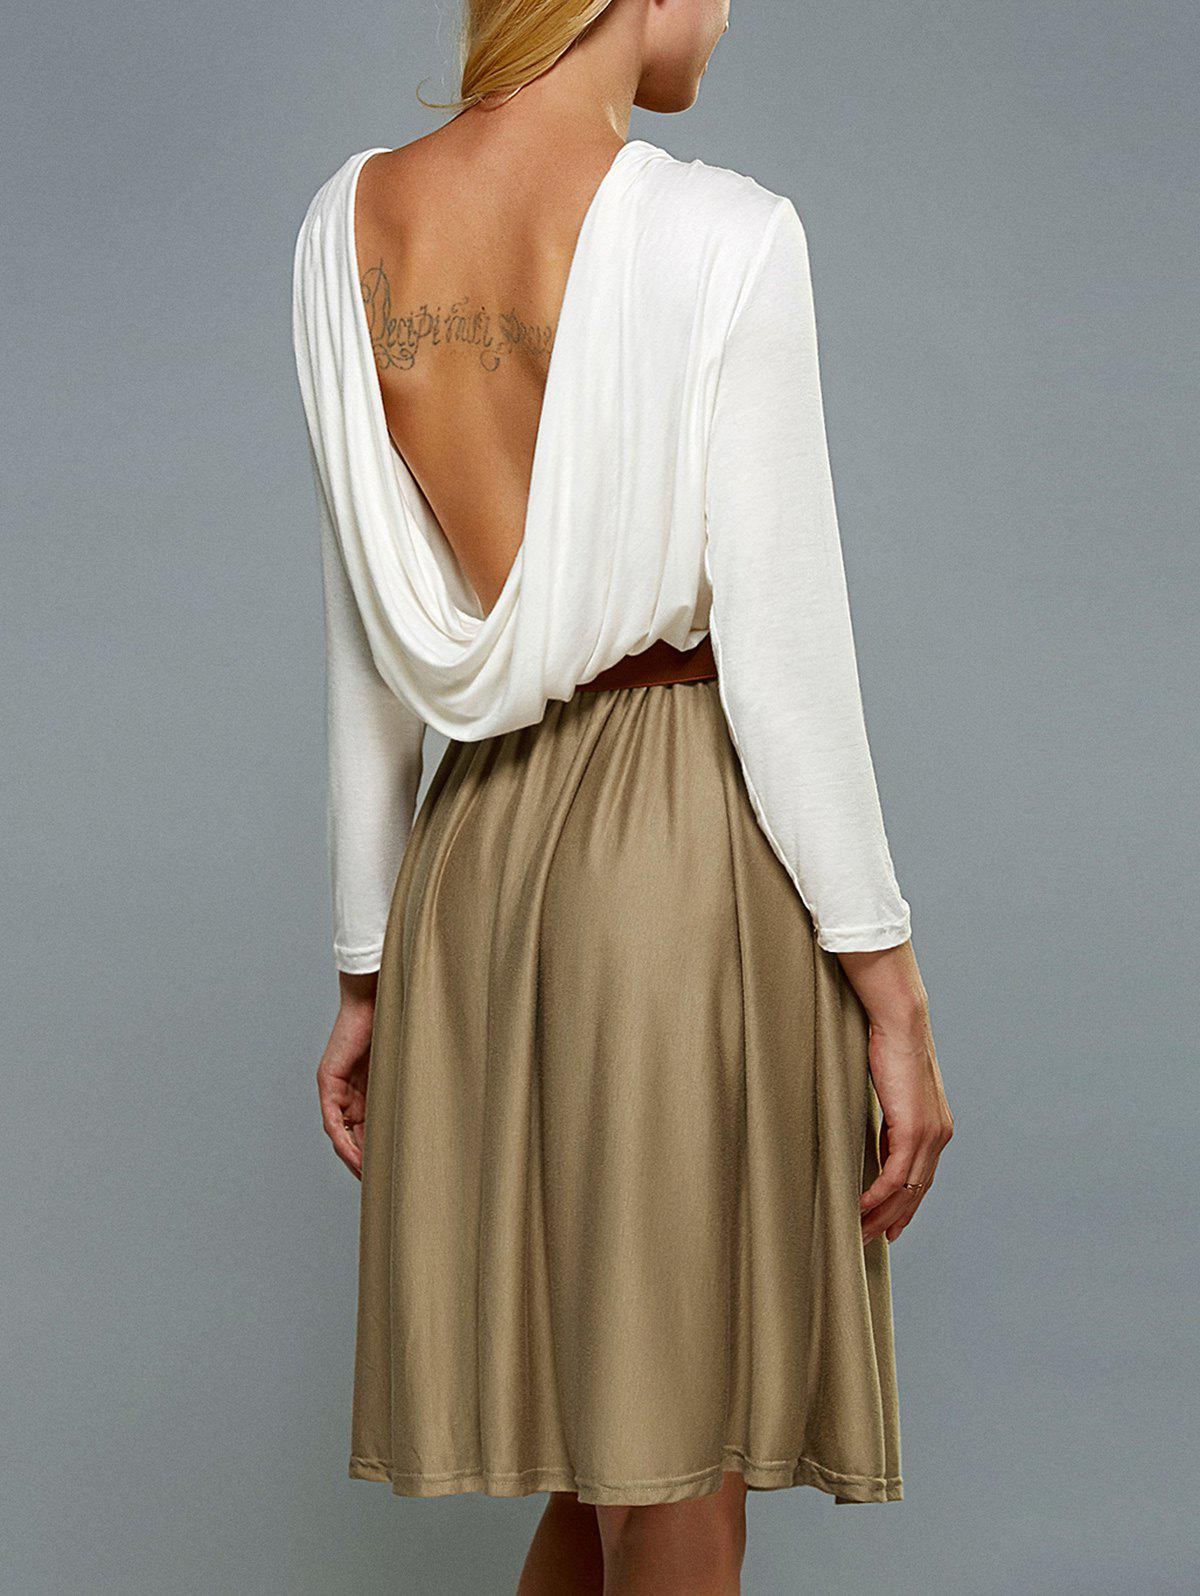 Robe Long Sleeve Backless A Line - Blanc S